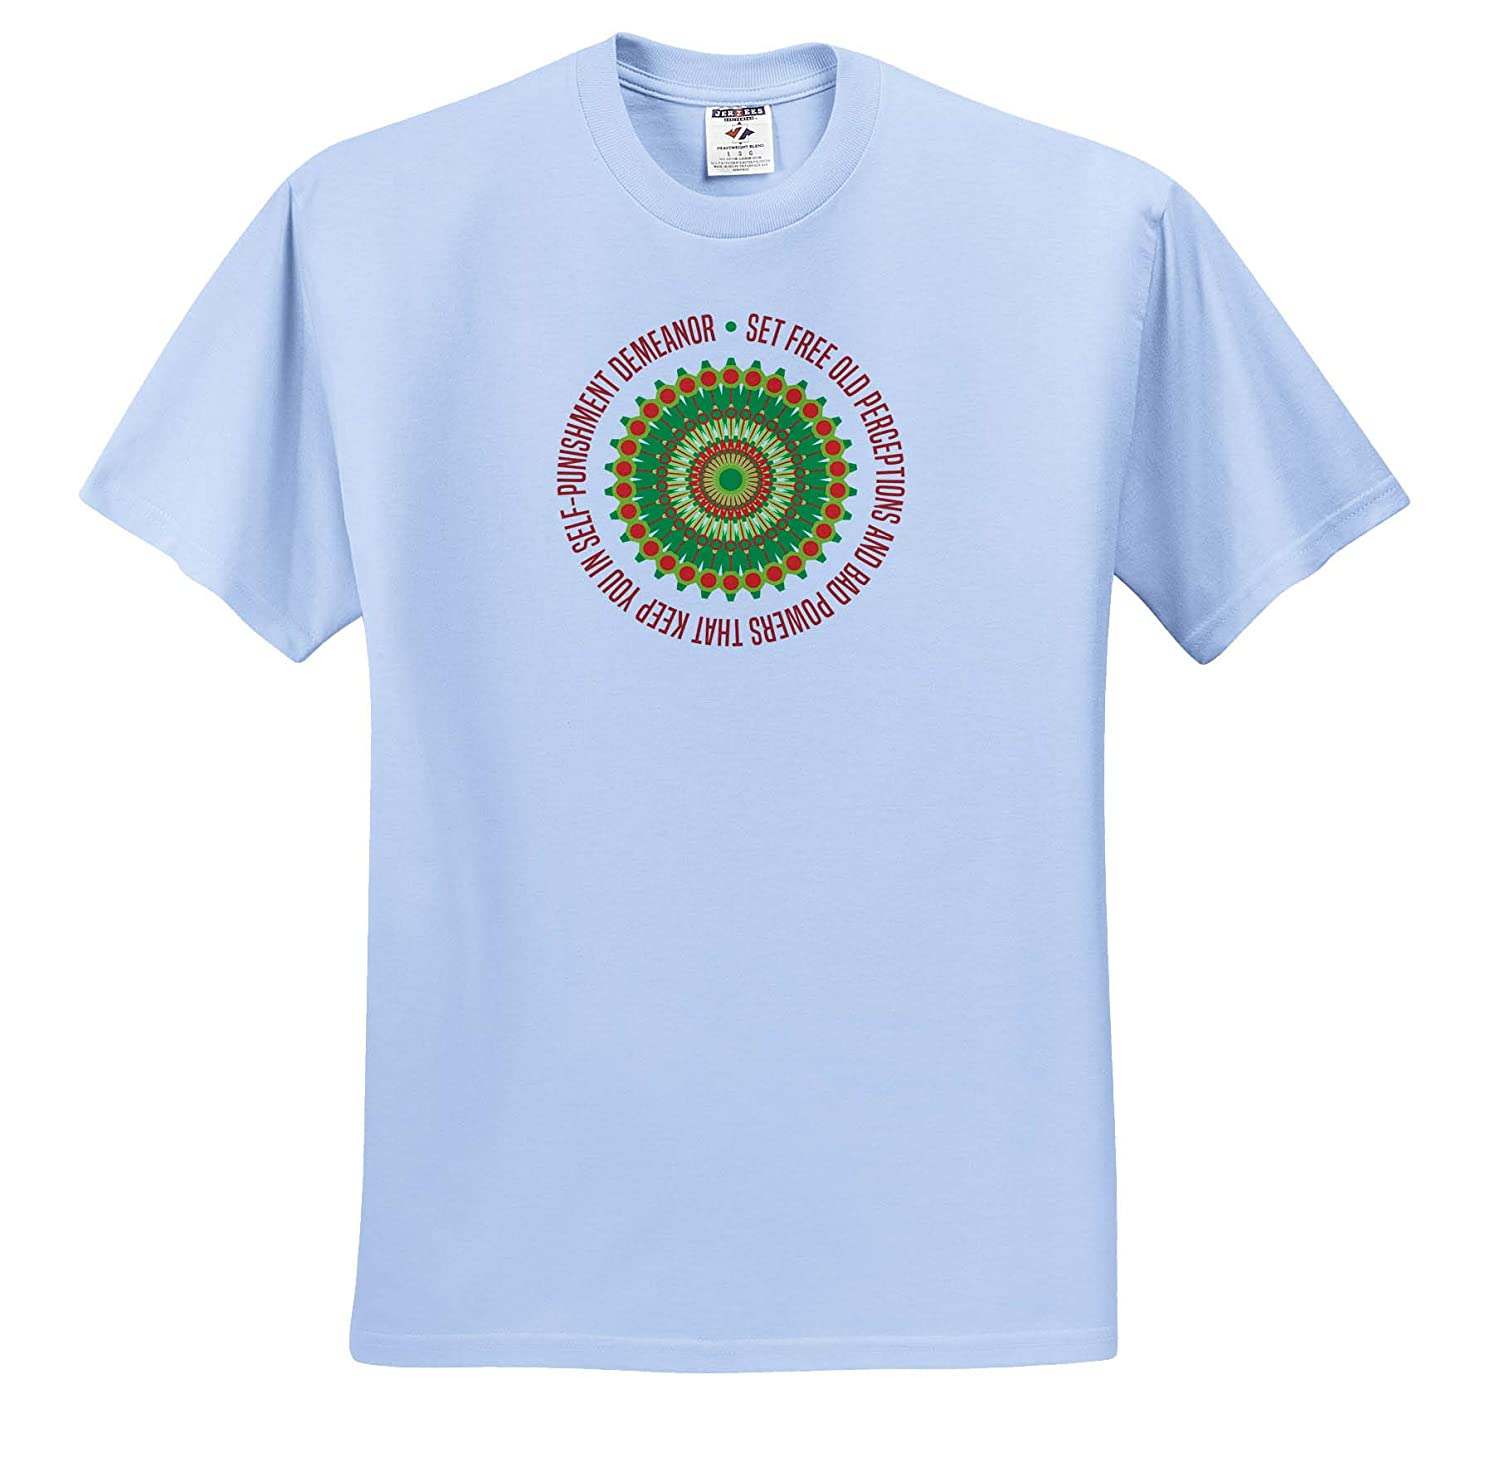 Around it Motivational and 12 Steps 3dRose Alexis Design T-Shirts Colorful Mandala and a Text Set Free Old perceptions